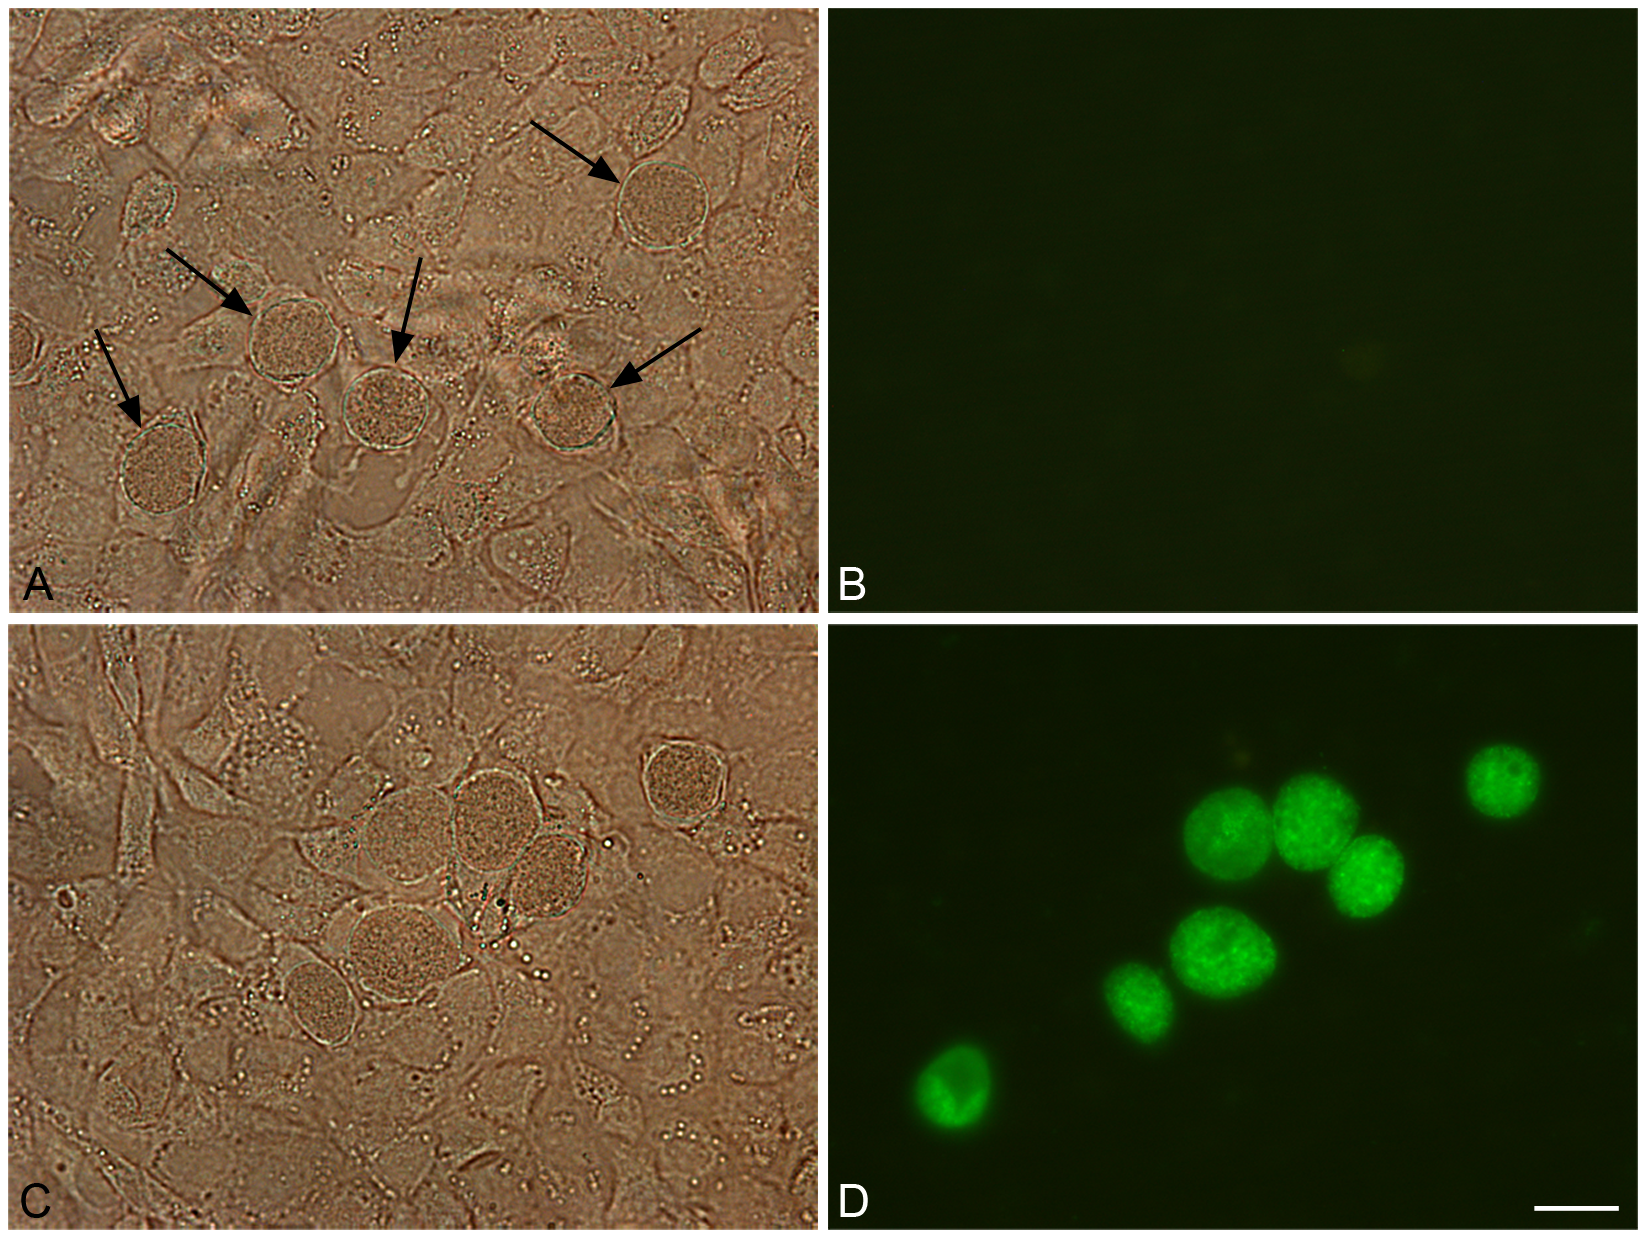 Green fluorescent inclusions in McCoy cells infected with <i>C. trachomatis</i> L2/434/Bu transformed with pGFP::SW2.